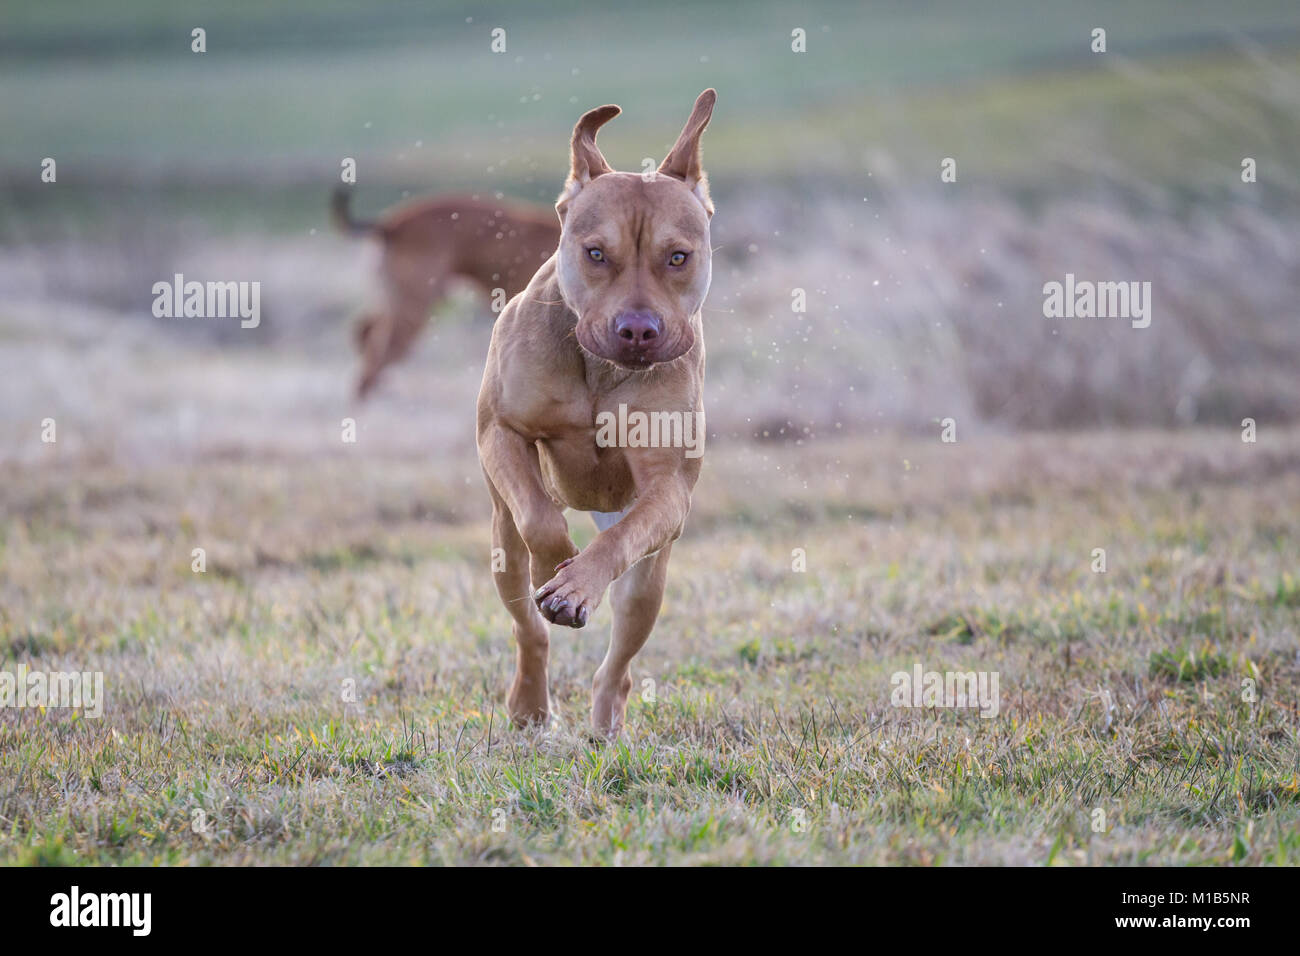 Working Pit Bulldog running on the meadow - Stock Image